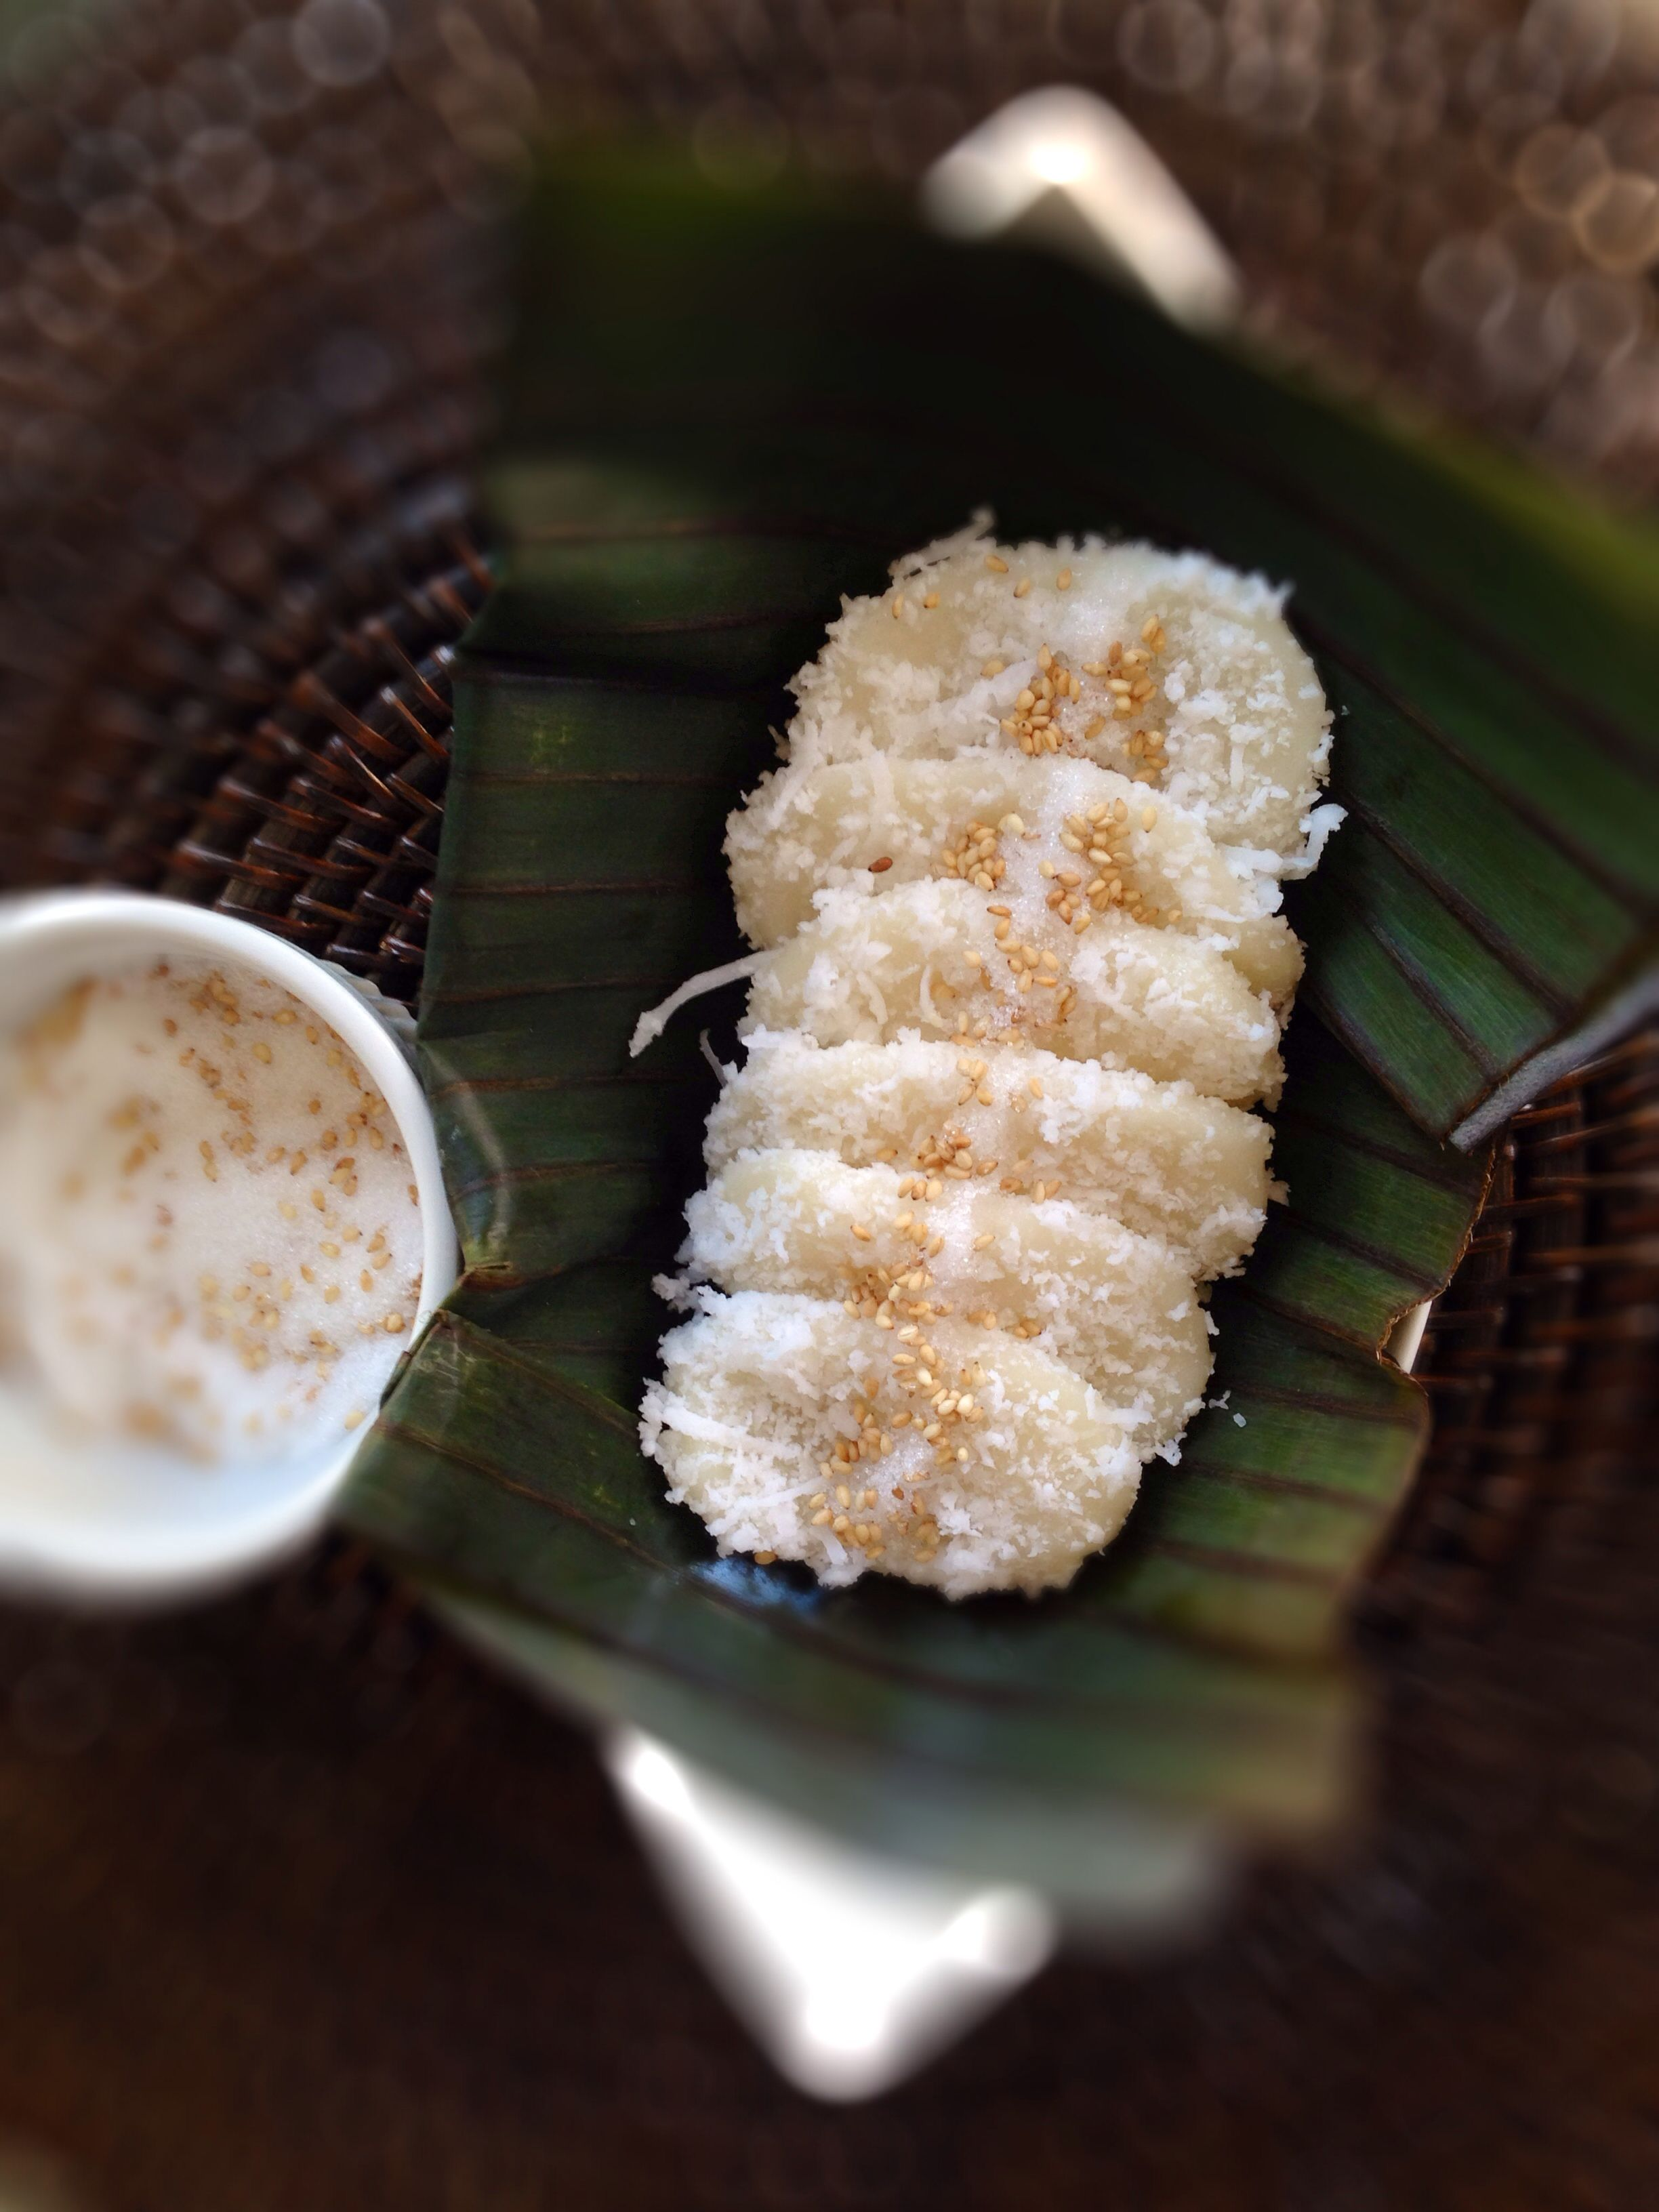 Palitaw with freshly grated coconut, sugar and sesame seeds (Filipino sticky rice dumplings)